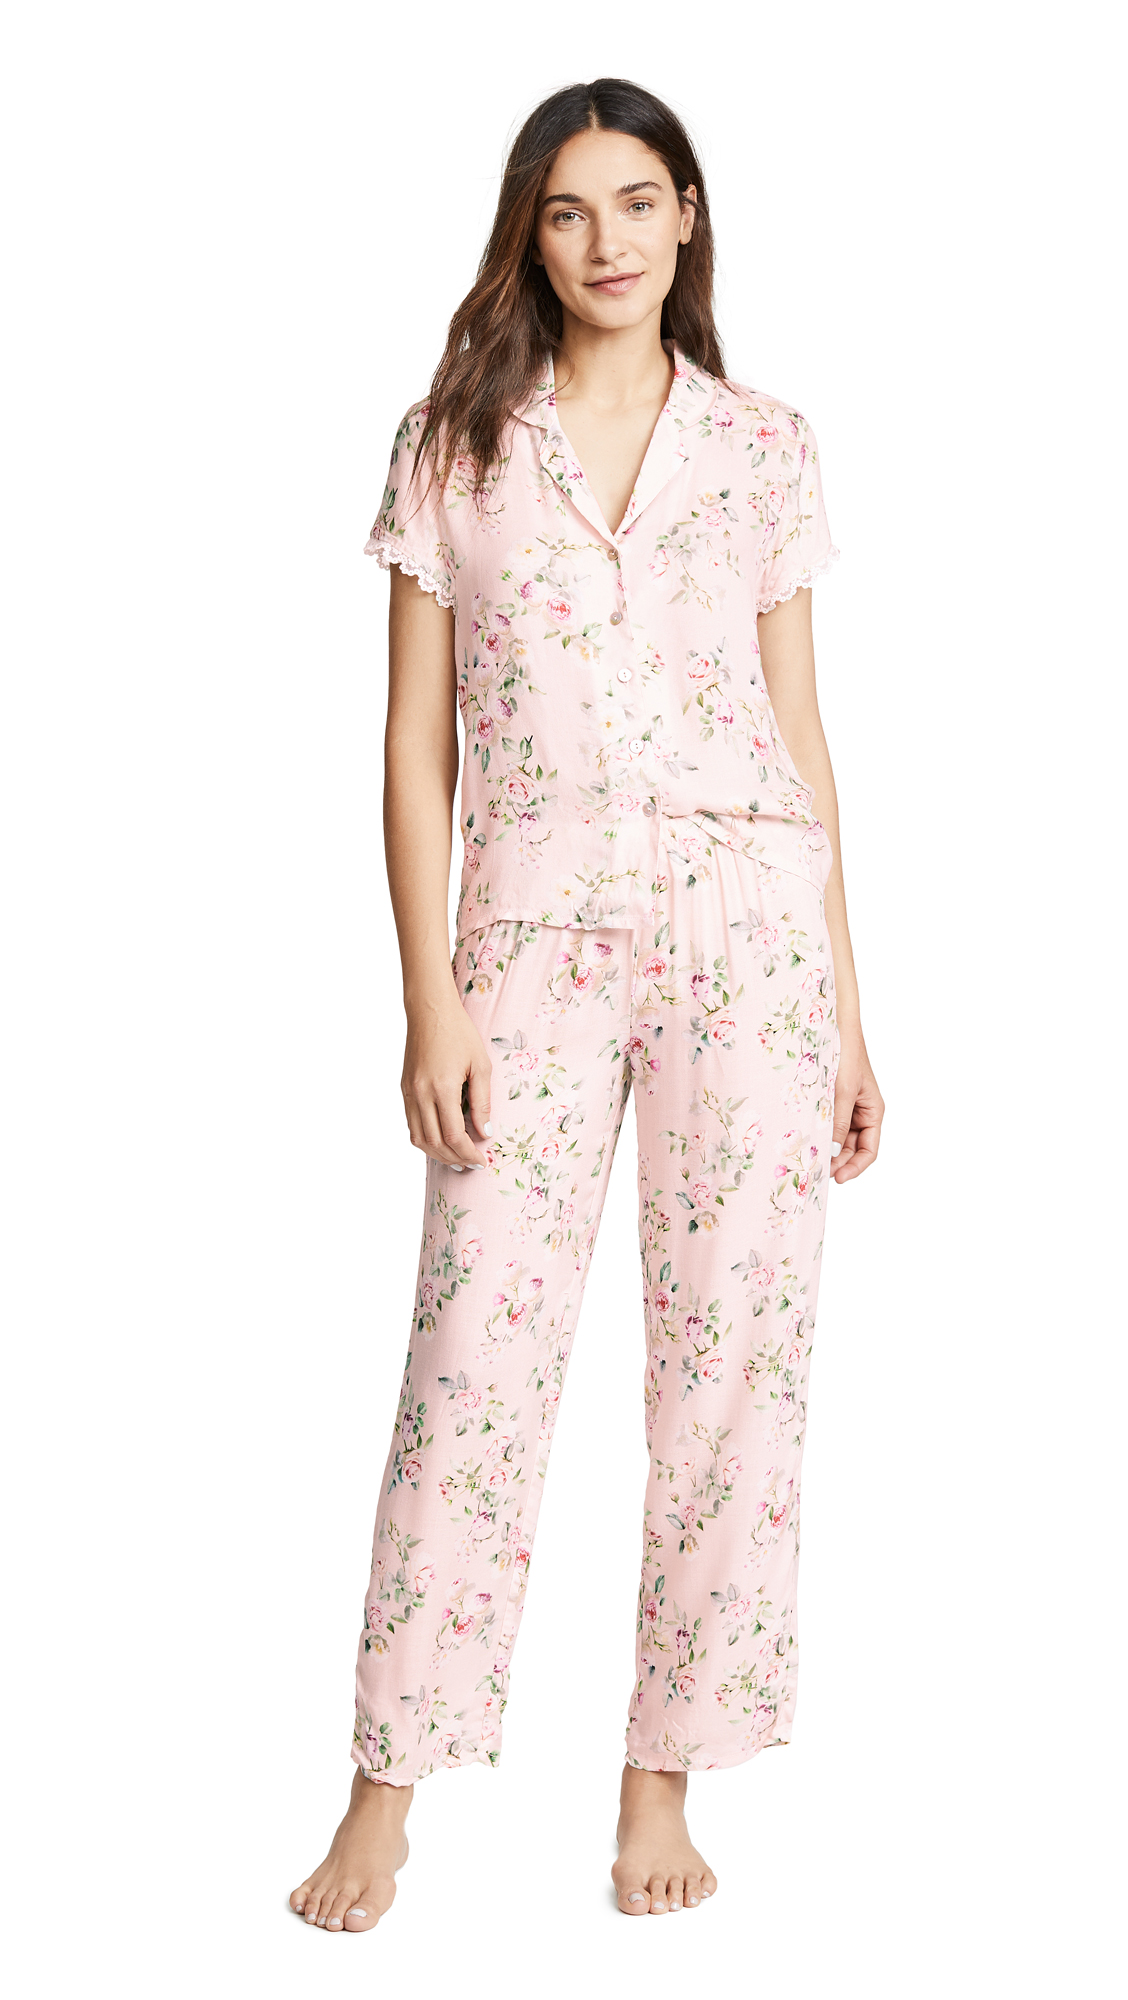 Flora Nikrooz Rose Printed PJ Set In Pink